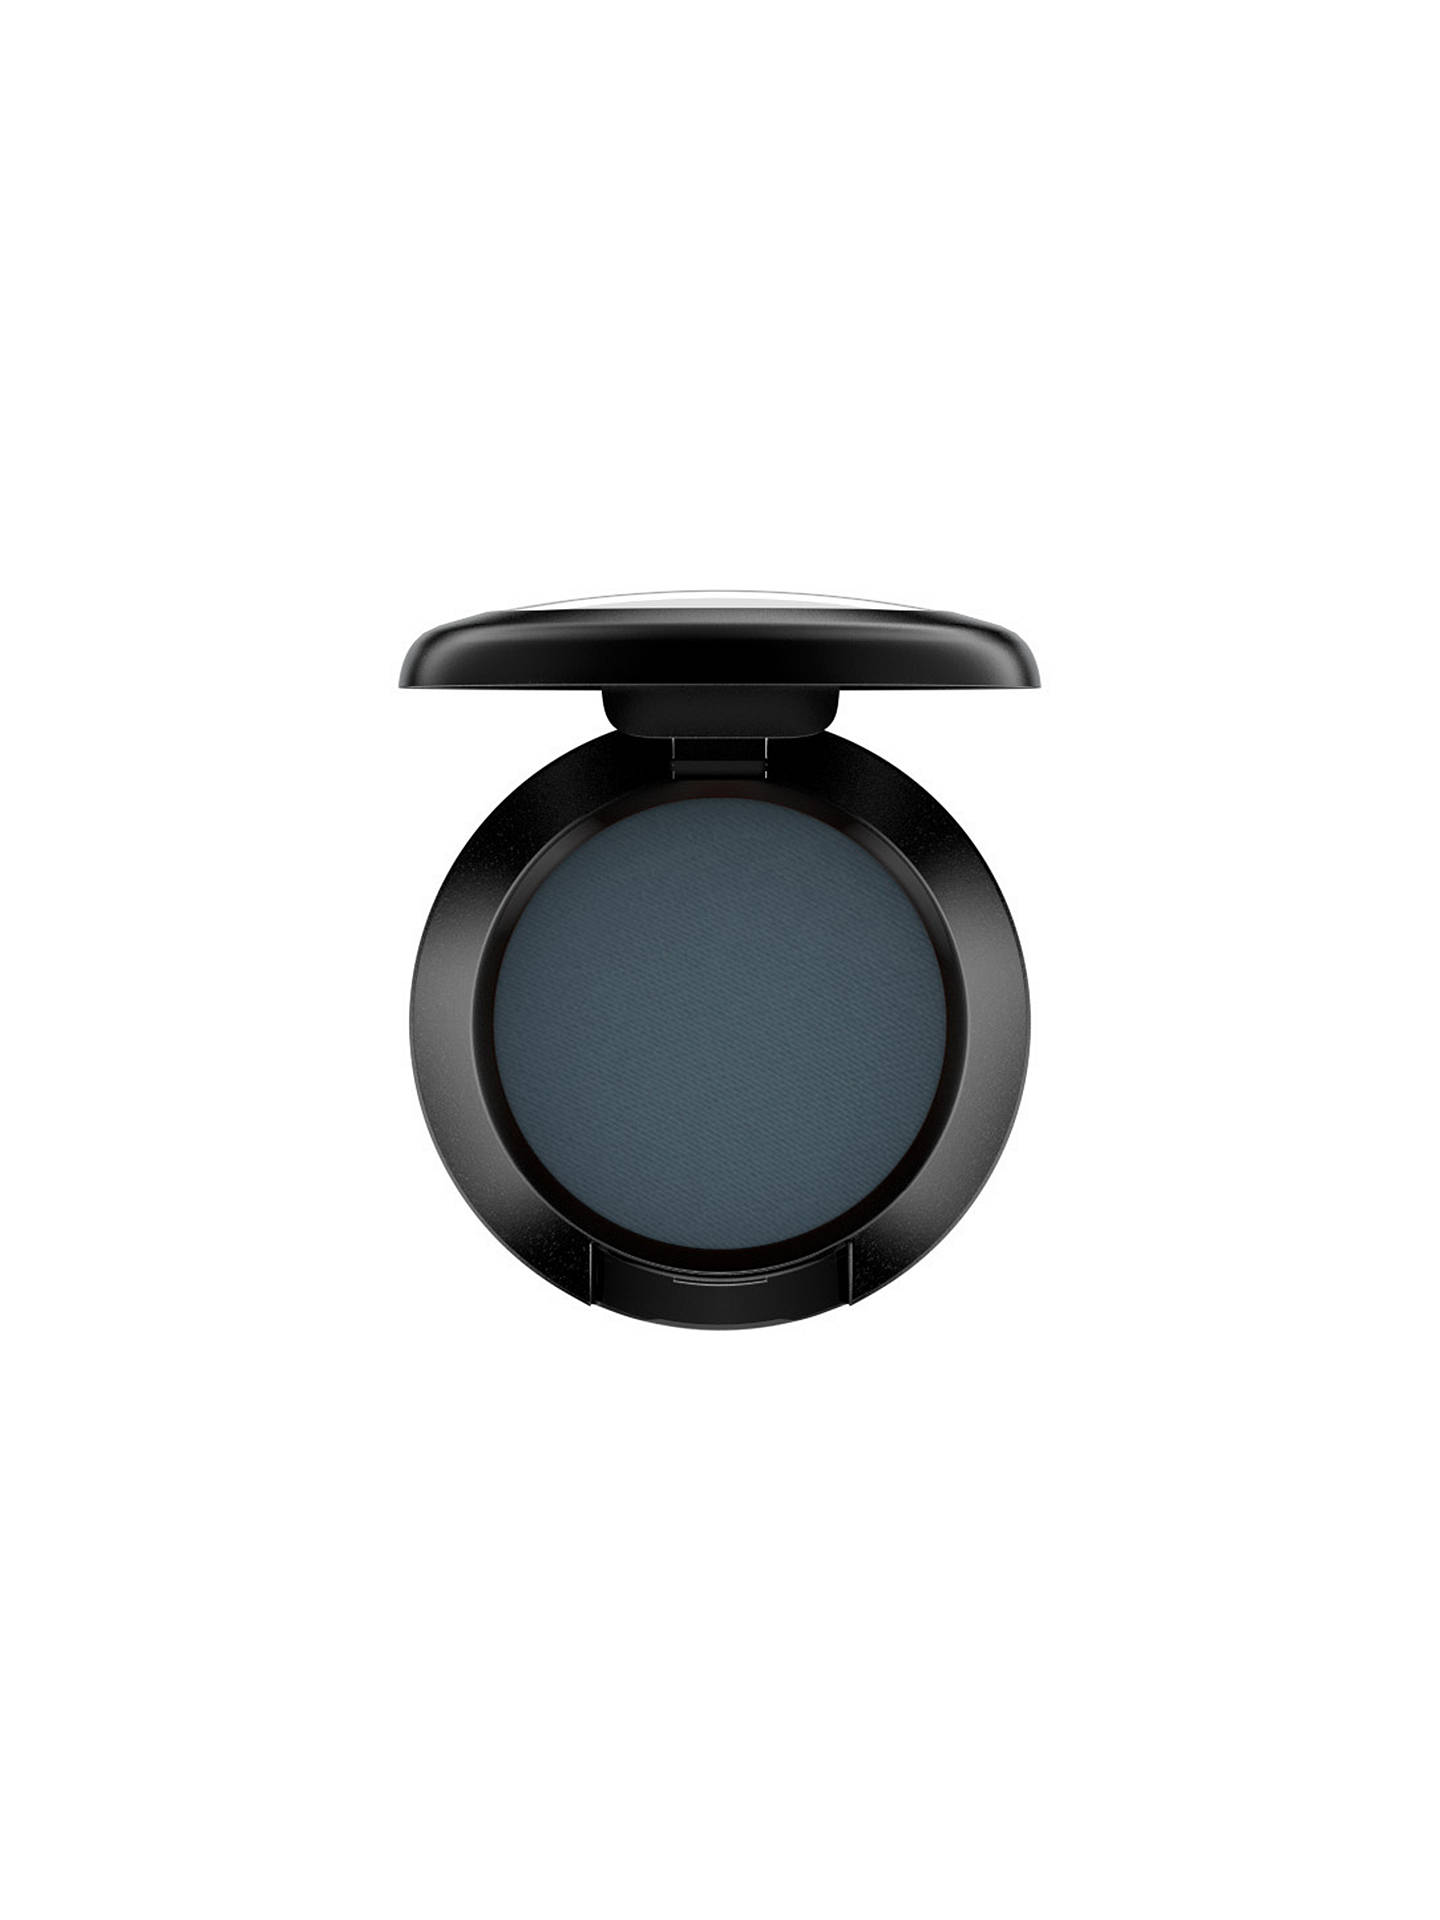 Buy MAC Eyeshadow - Matte, Plumage Online at johnlewis.com